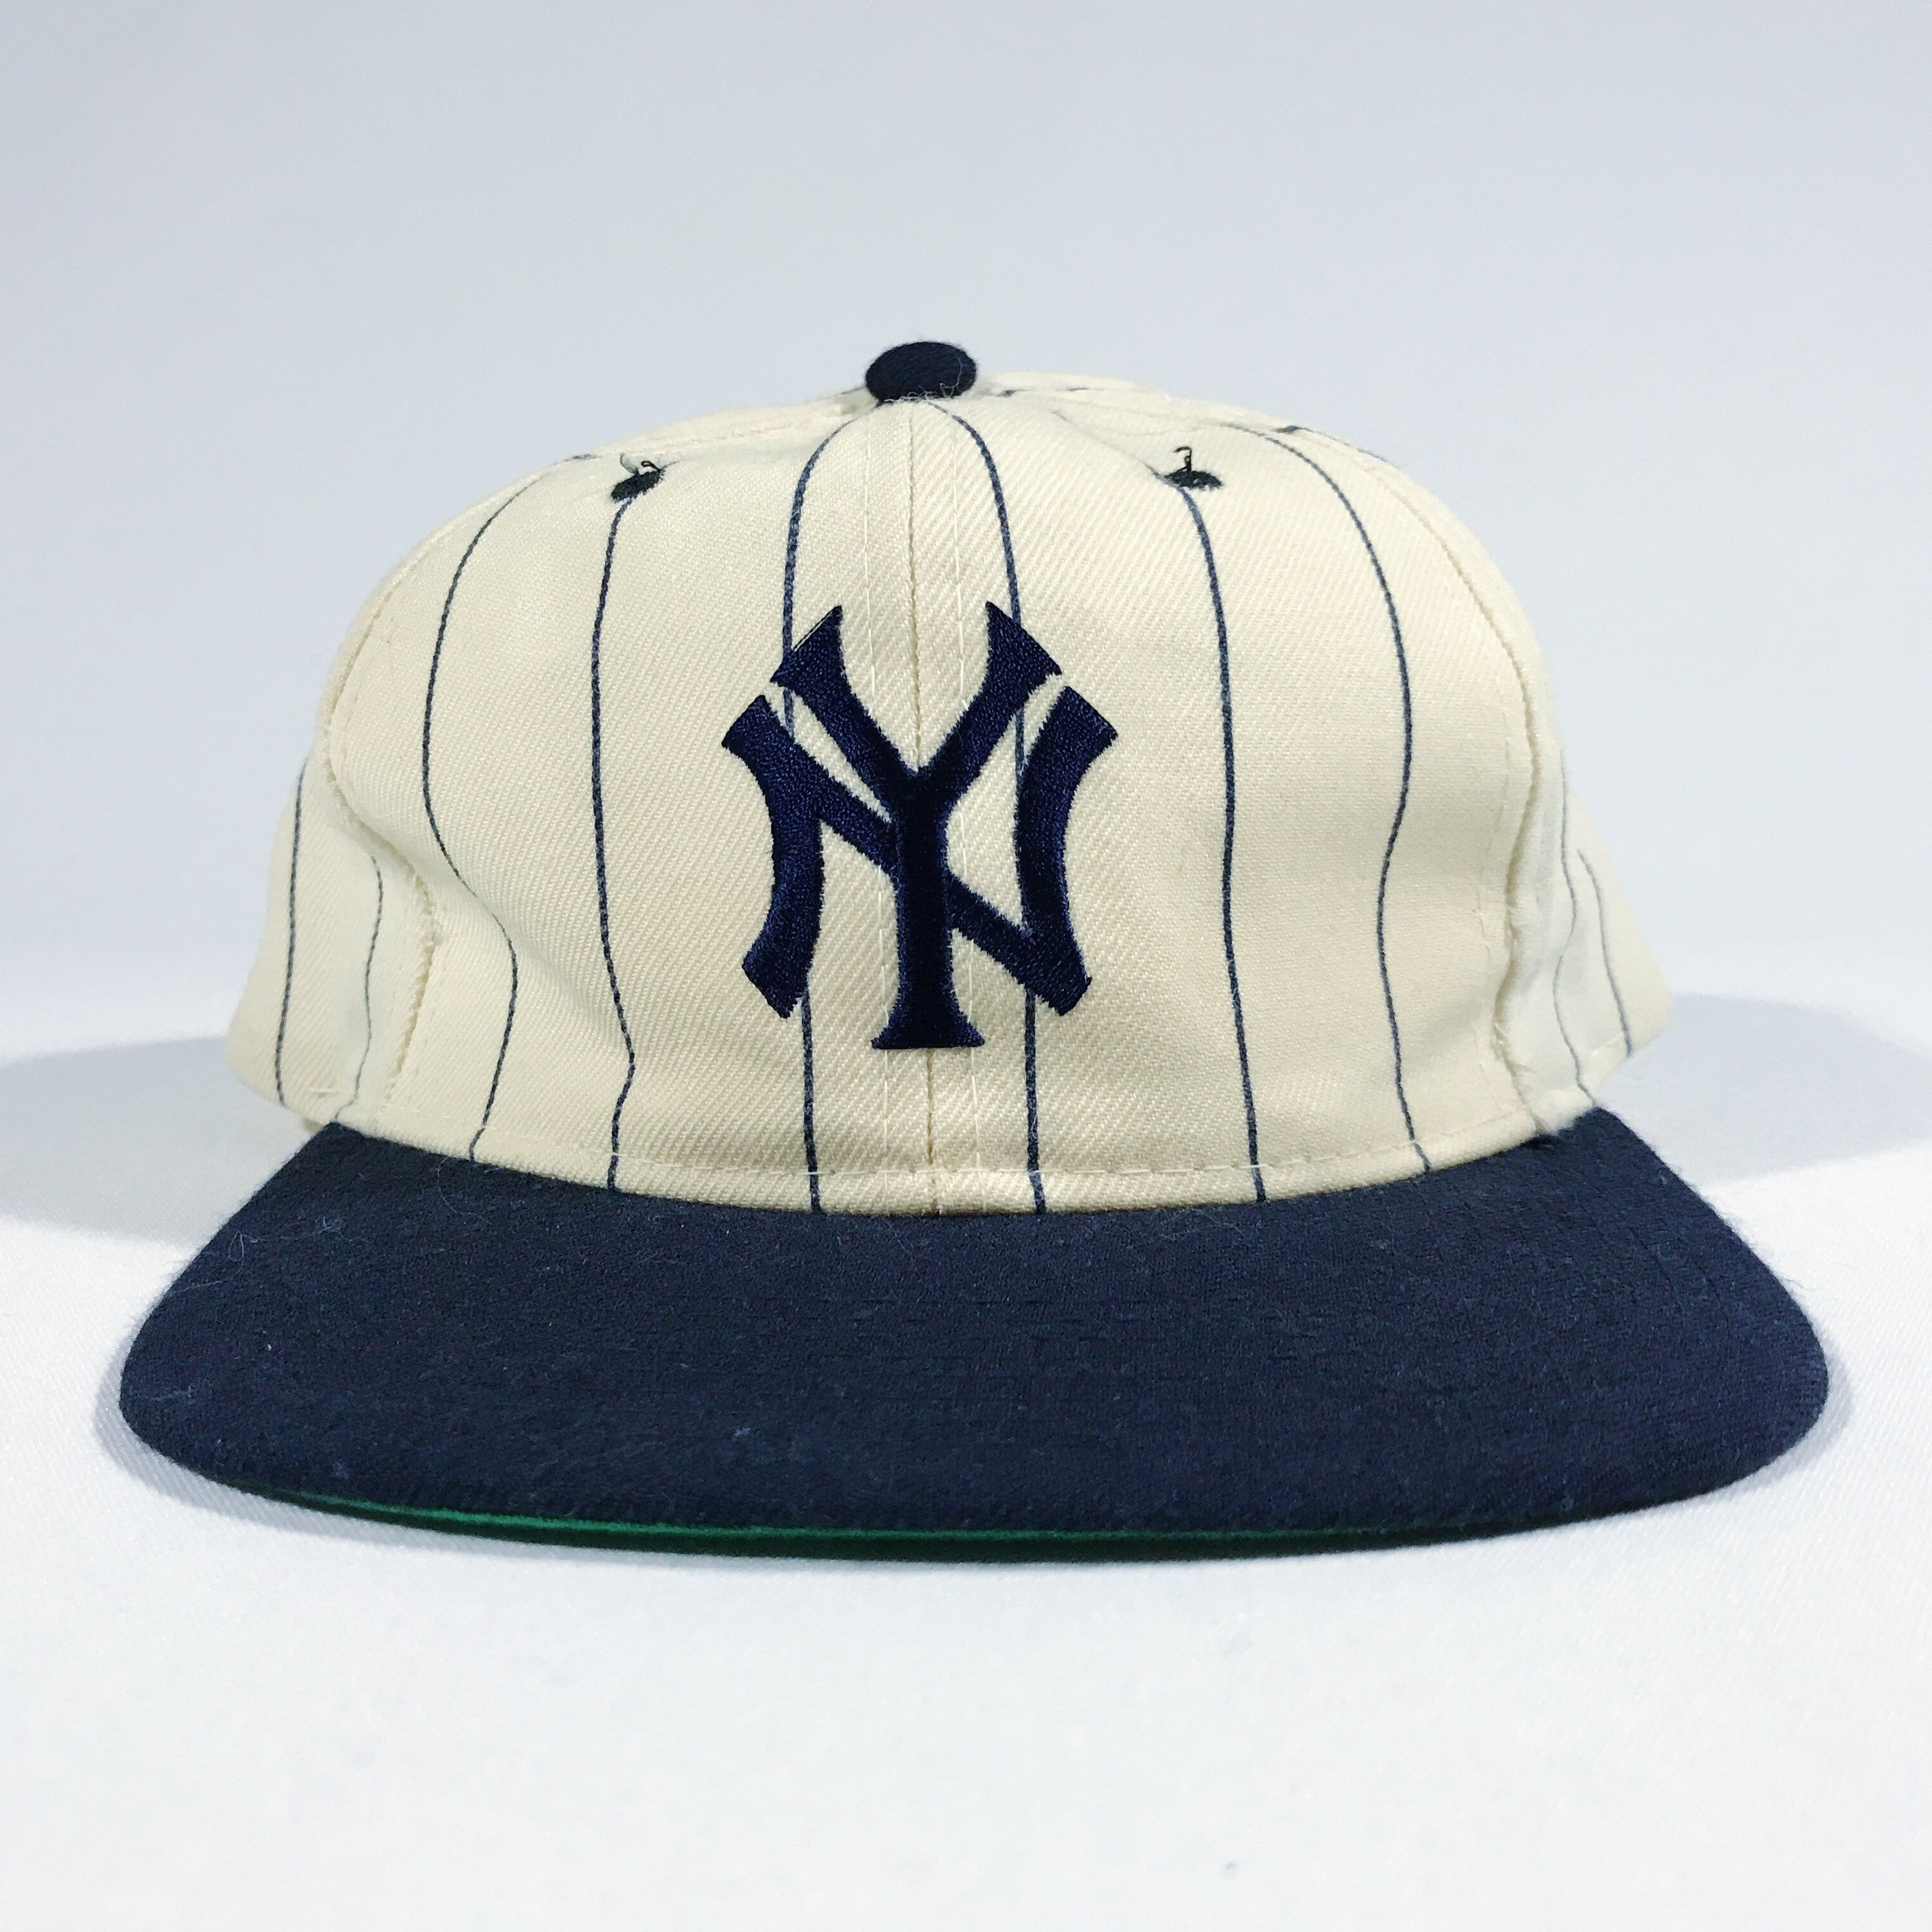 4db5a9b2caf25 Home — New York Yankees Pinstripe Starter Snapback. Product Image ...